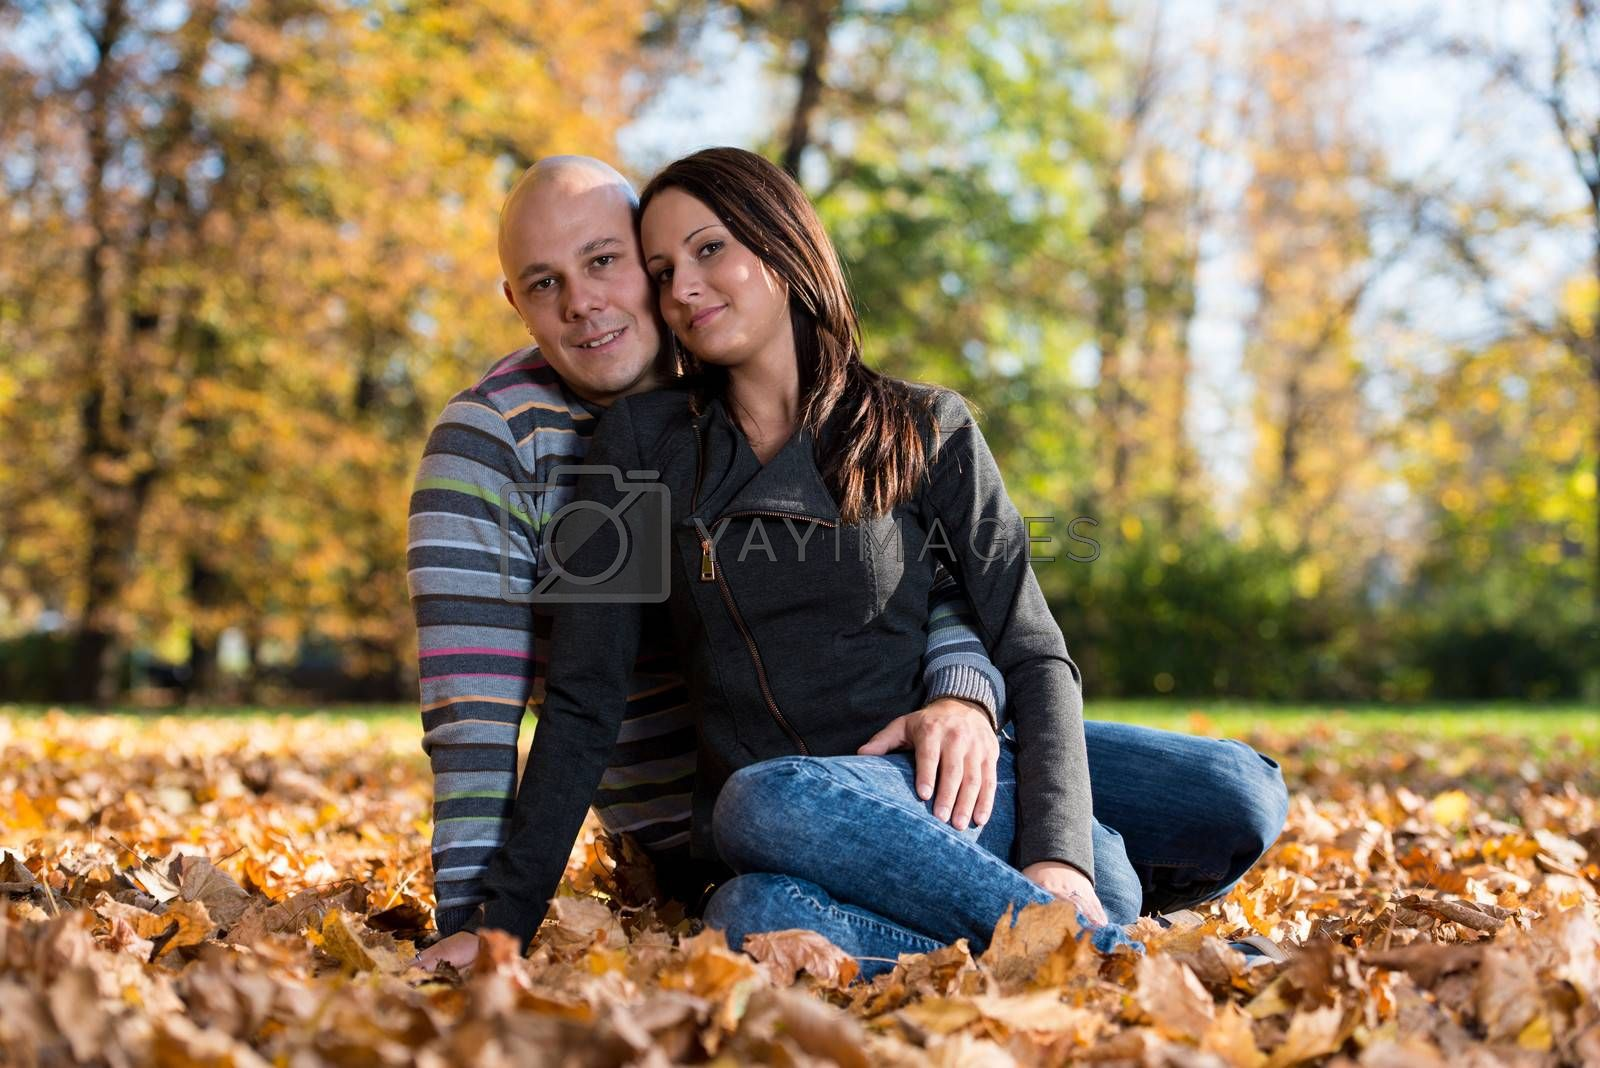 Couple Sitting Together In The Woods During Autumn